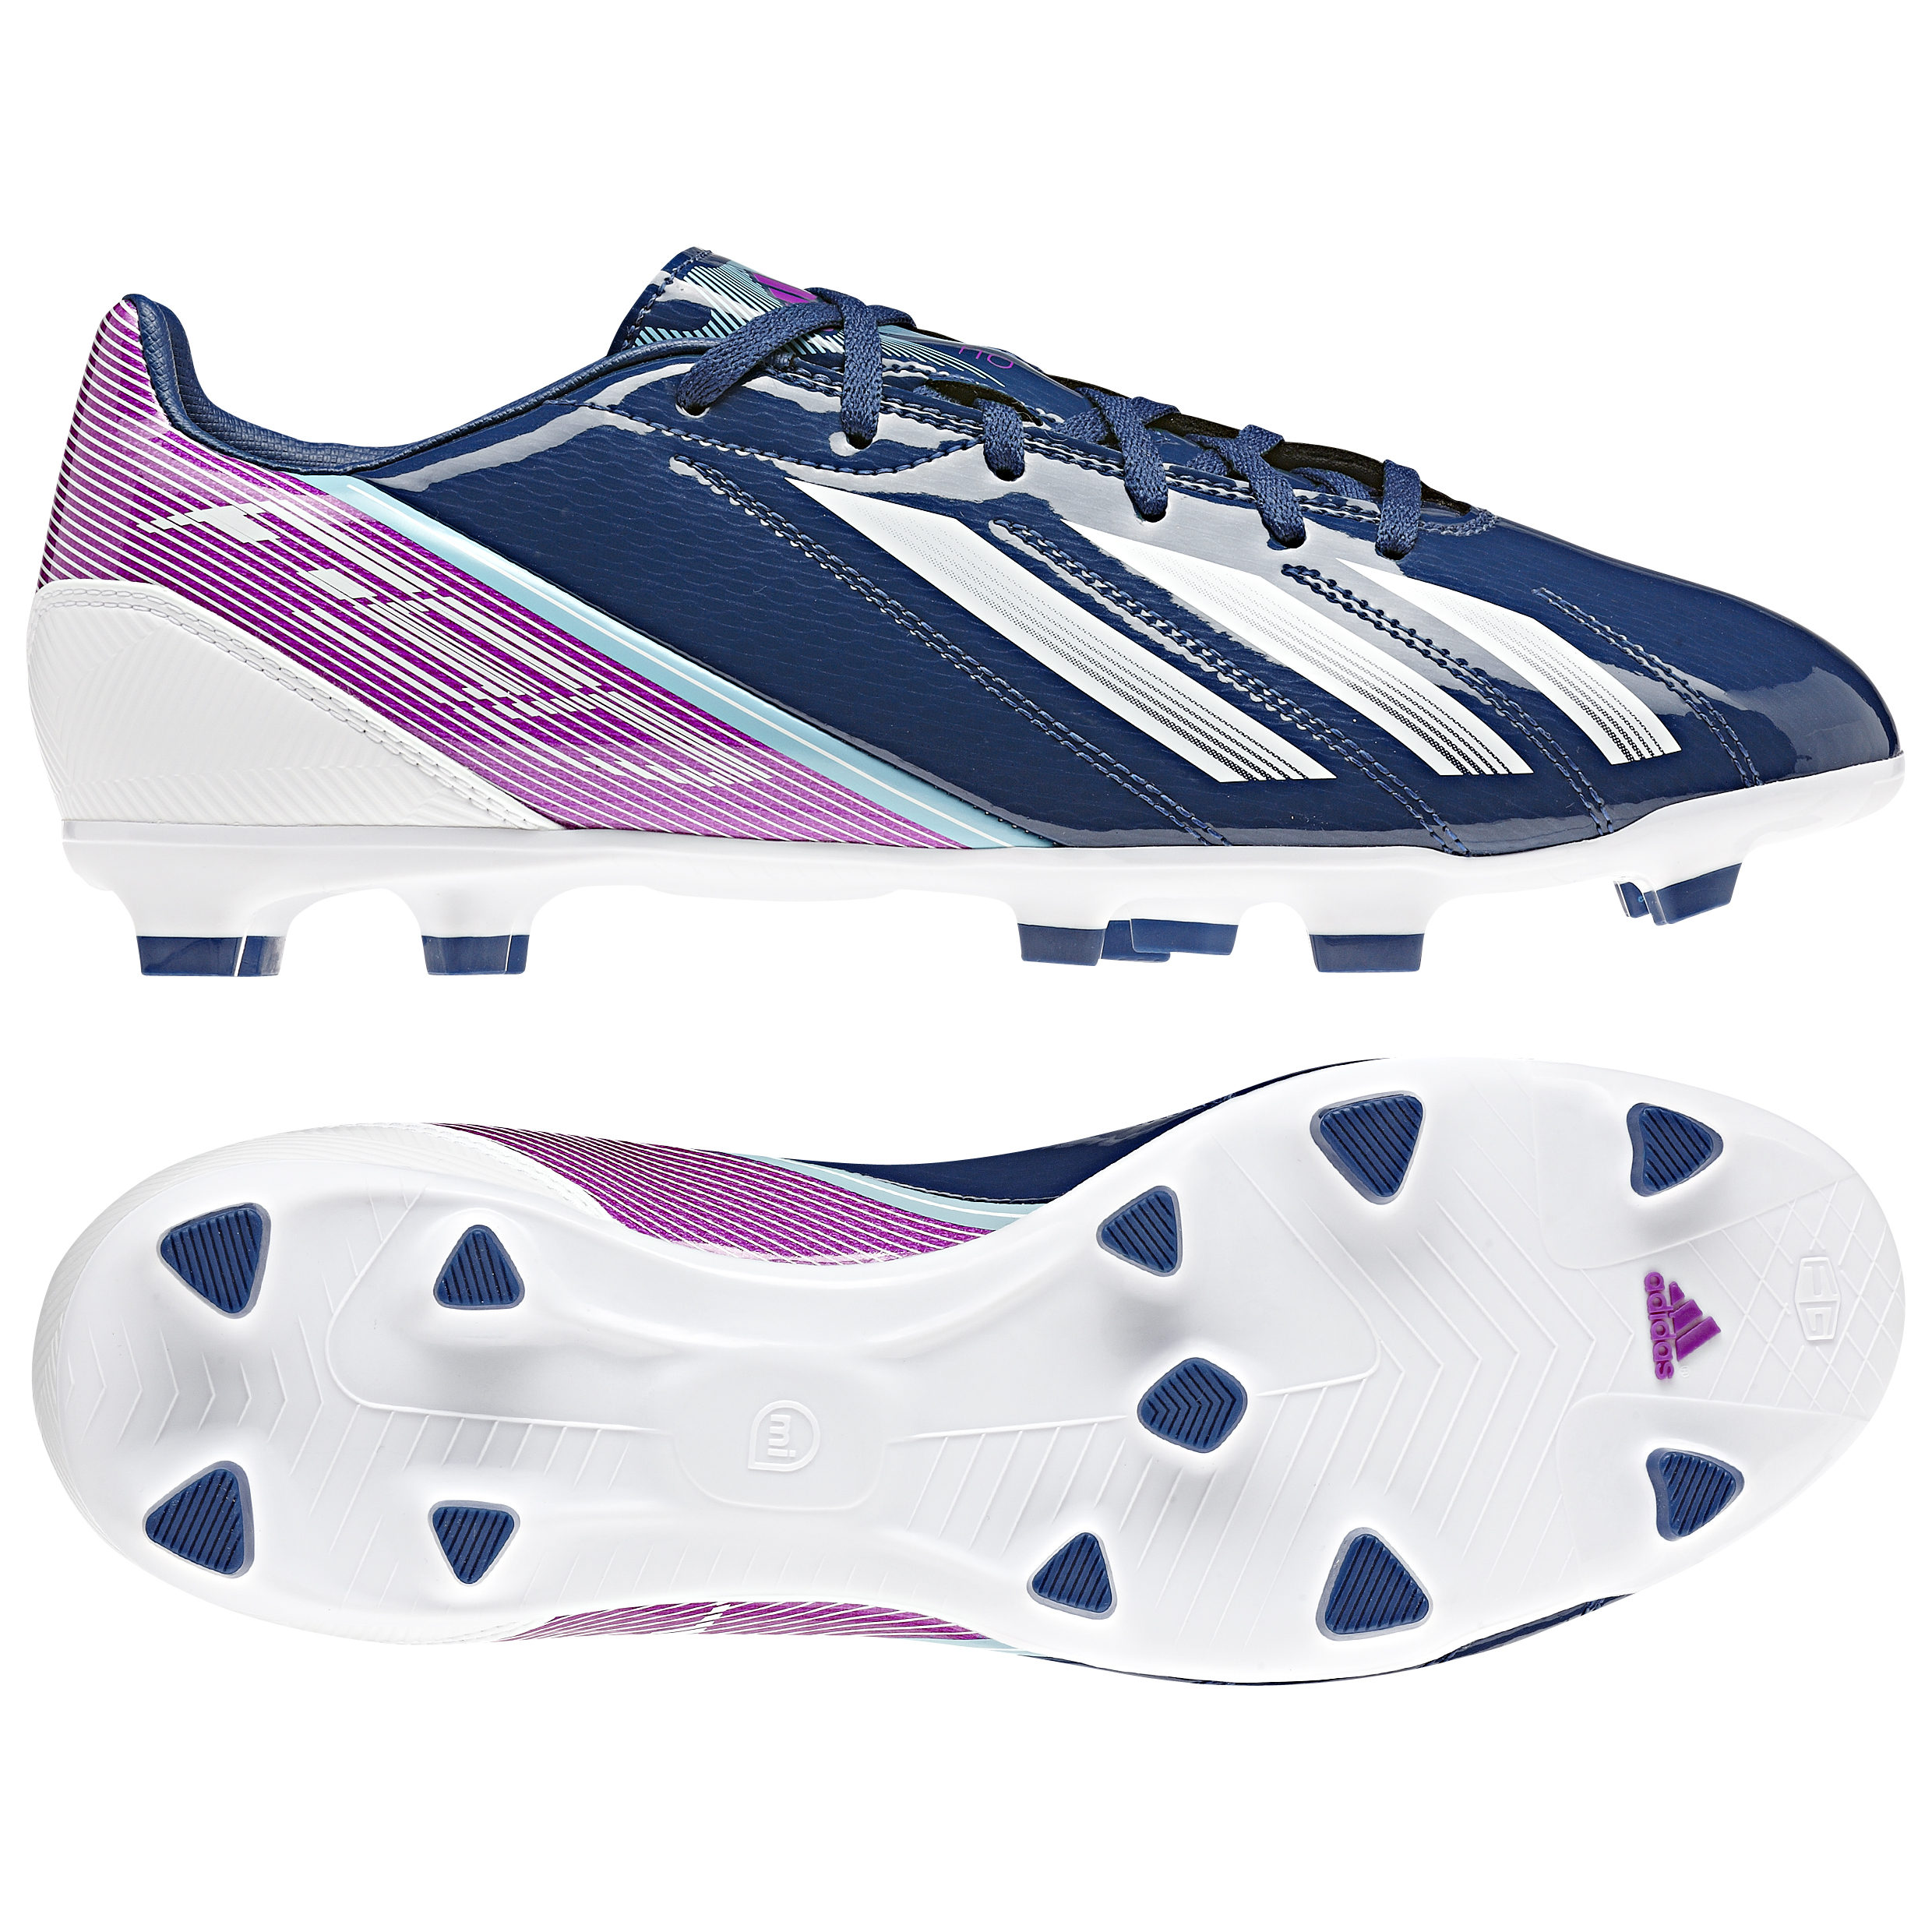 adidas AdiZero F10 TRX Firm Ground Football Boots - Dark Blue/Running White/Vivid Pink